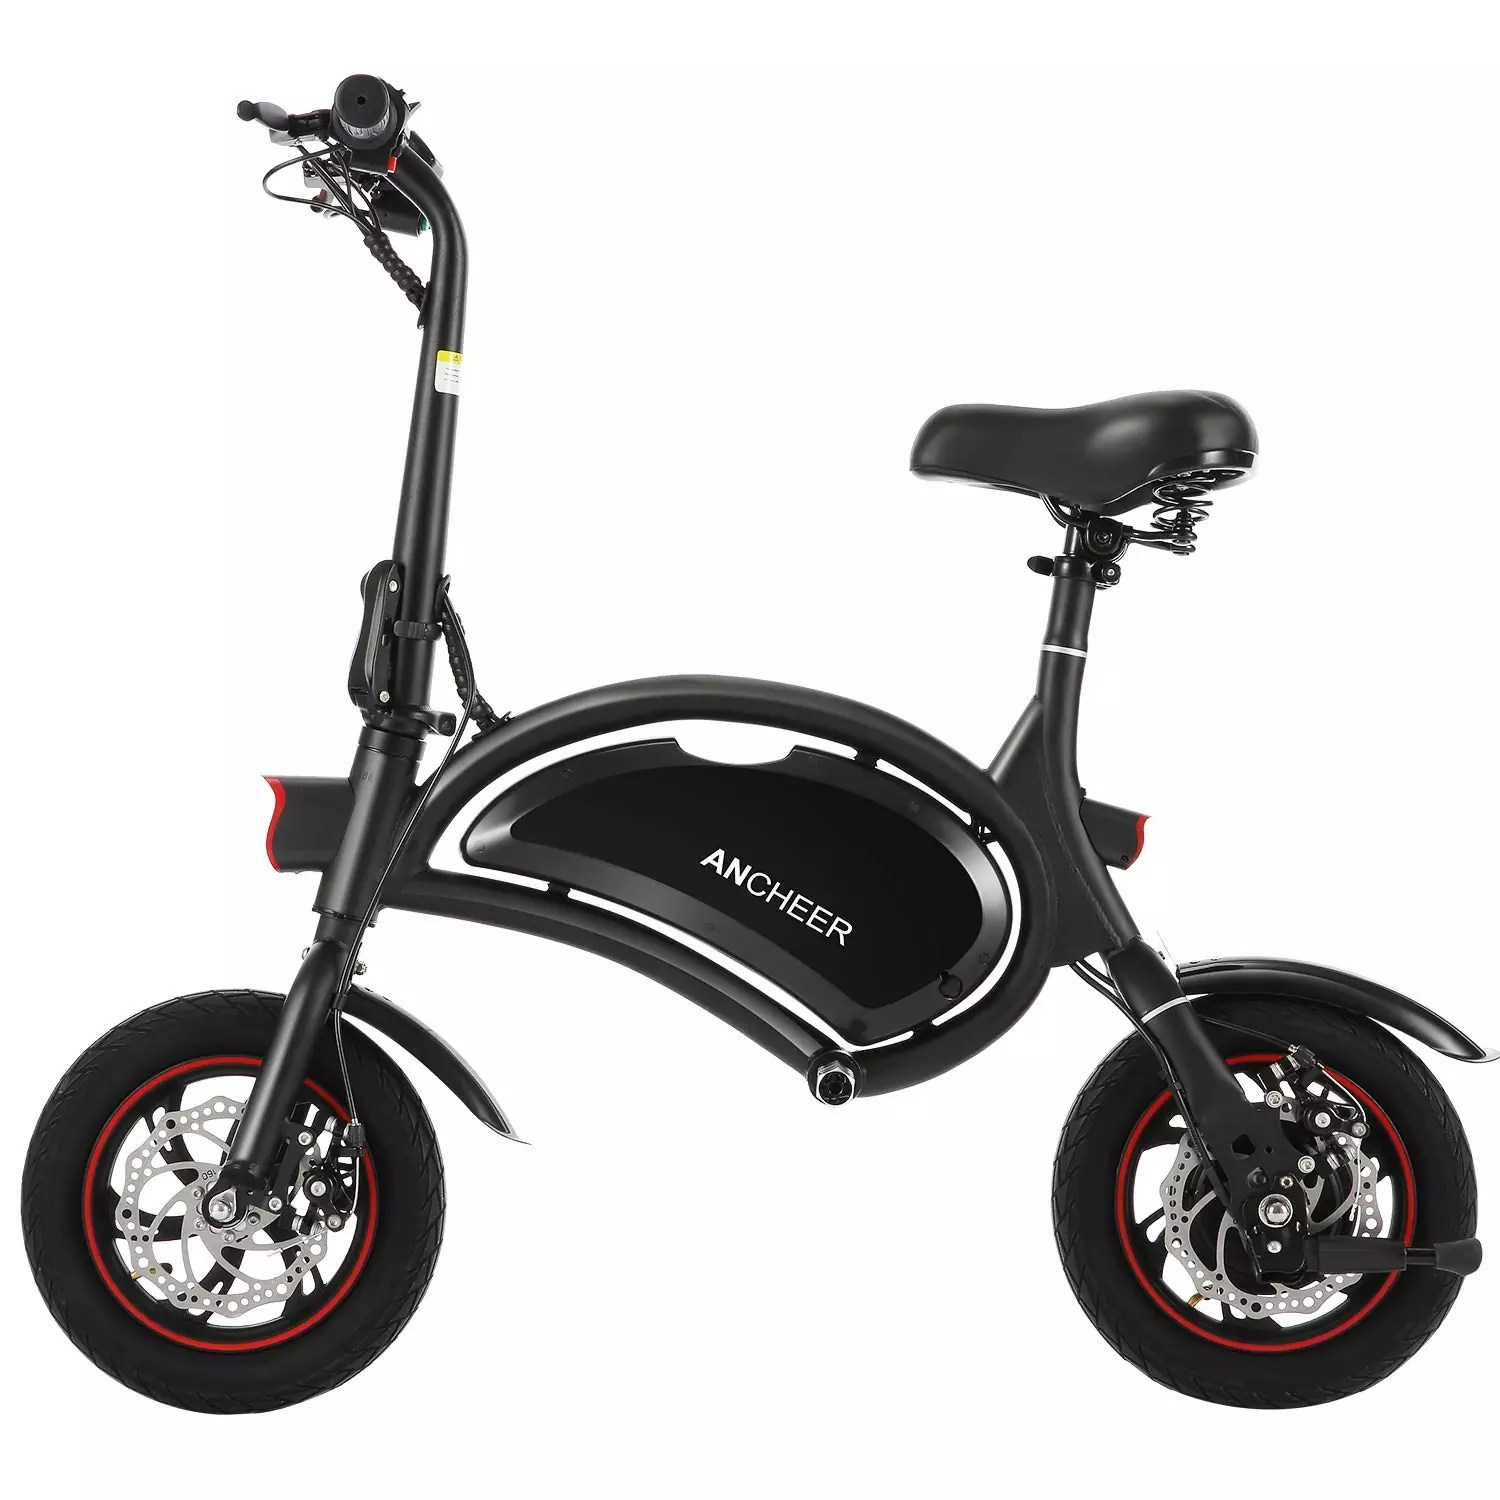 ANCHEER Electric Bicycle For Adults